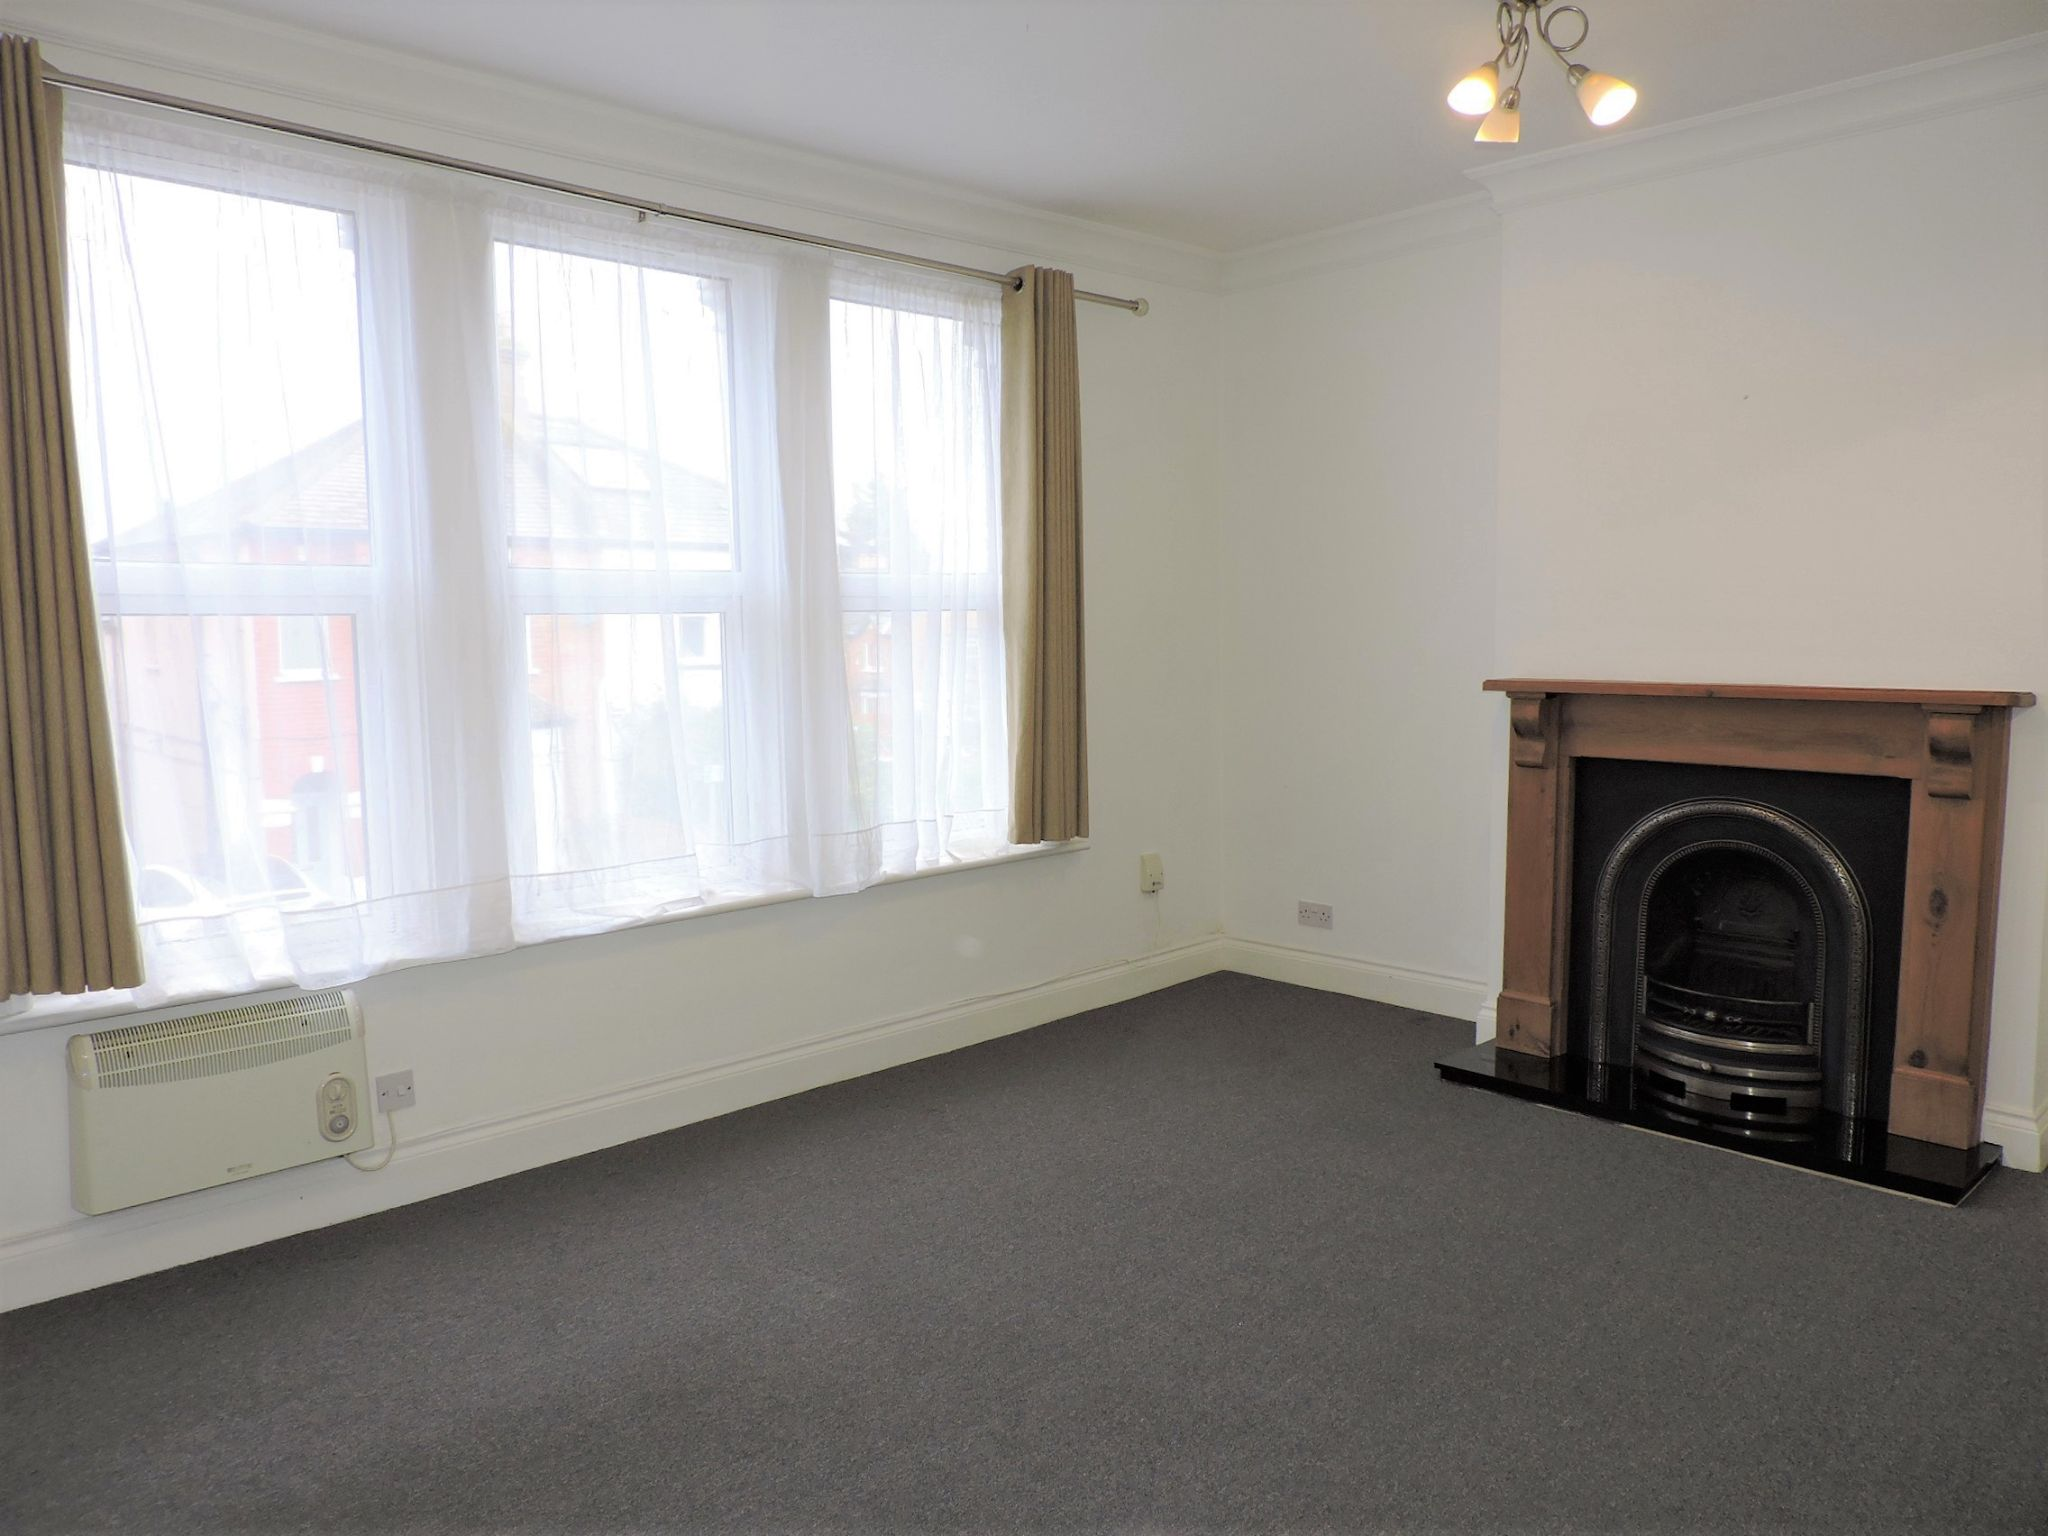 1 bedroom flat flat/apartment Let in New Malden - Photograph 5